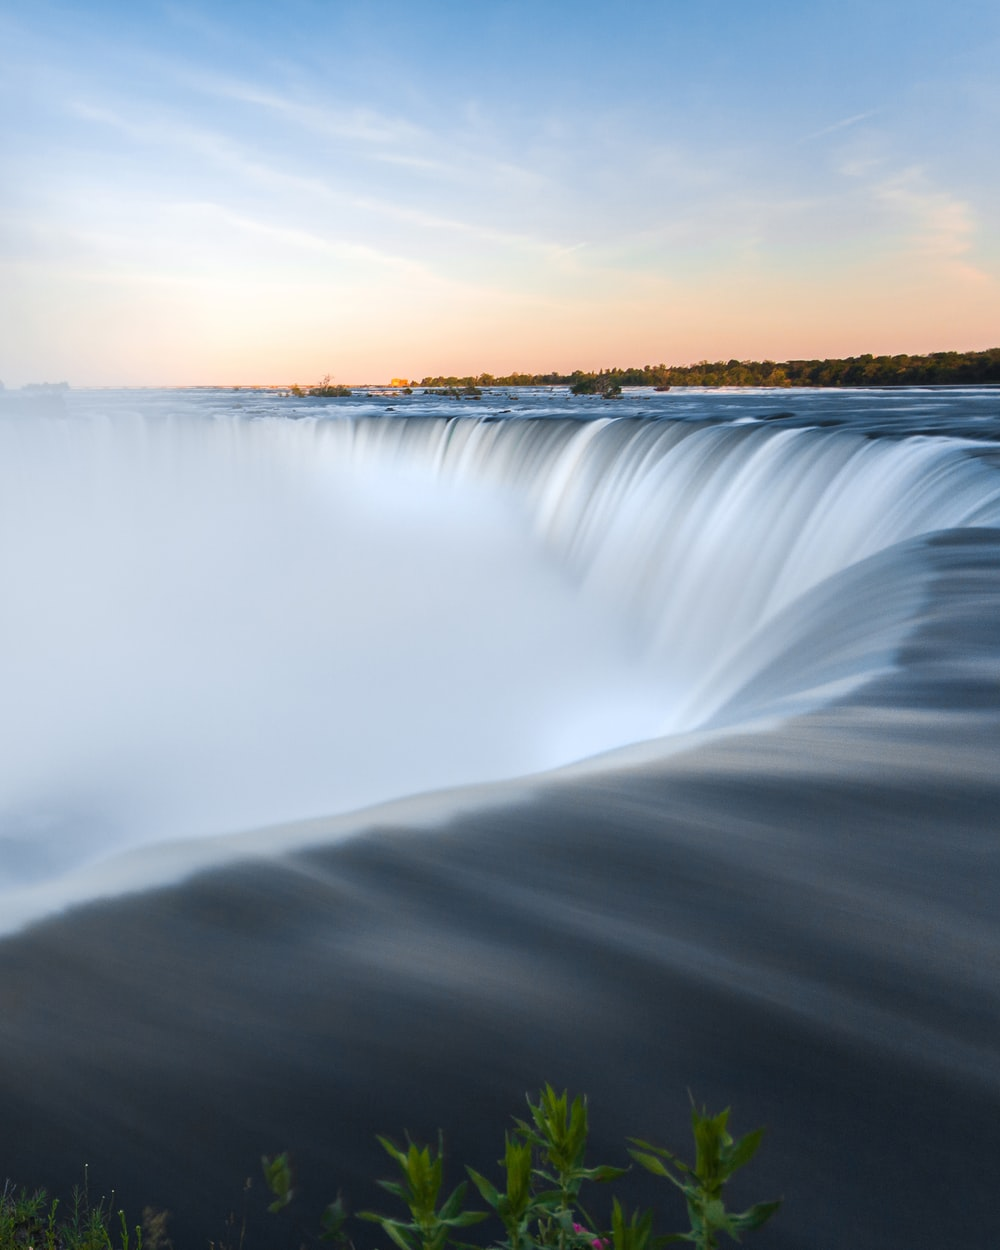 timelapse photography of Niagara falls